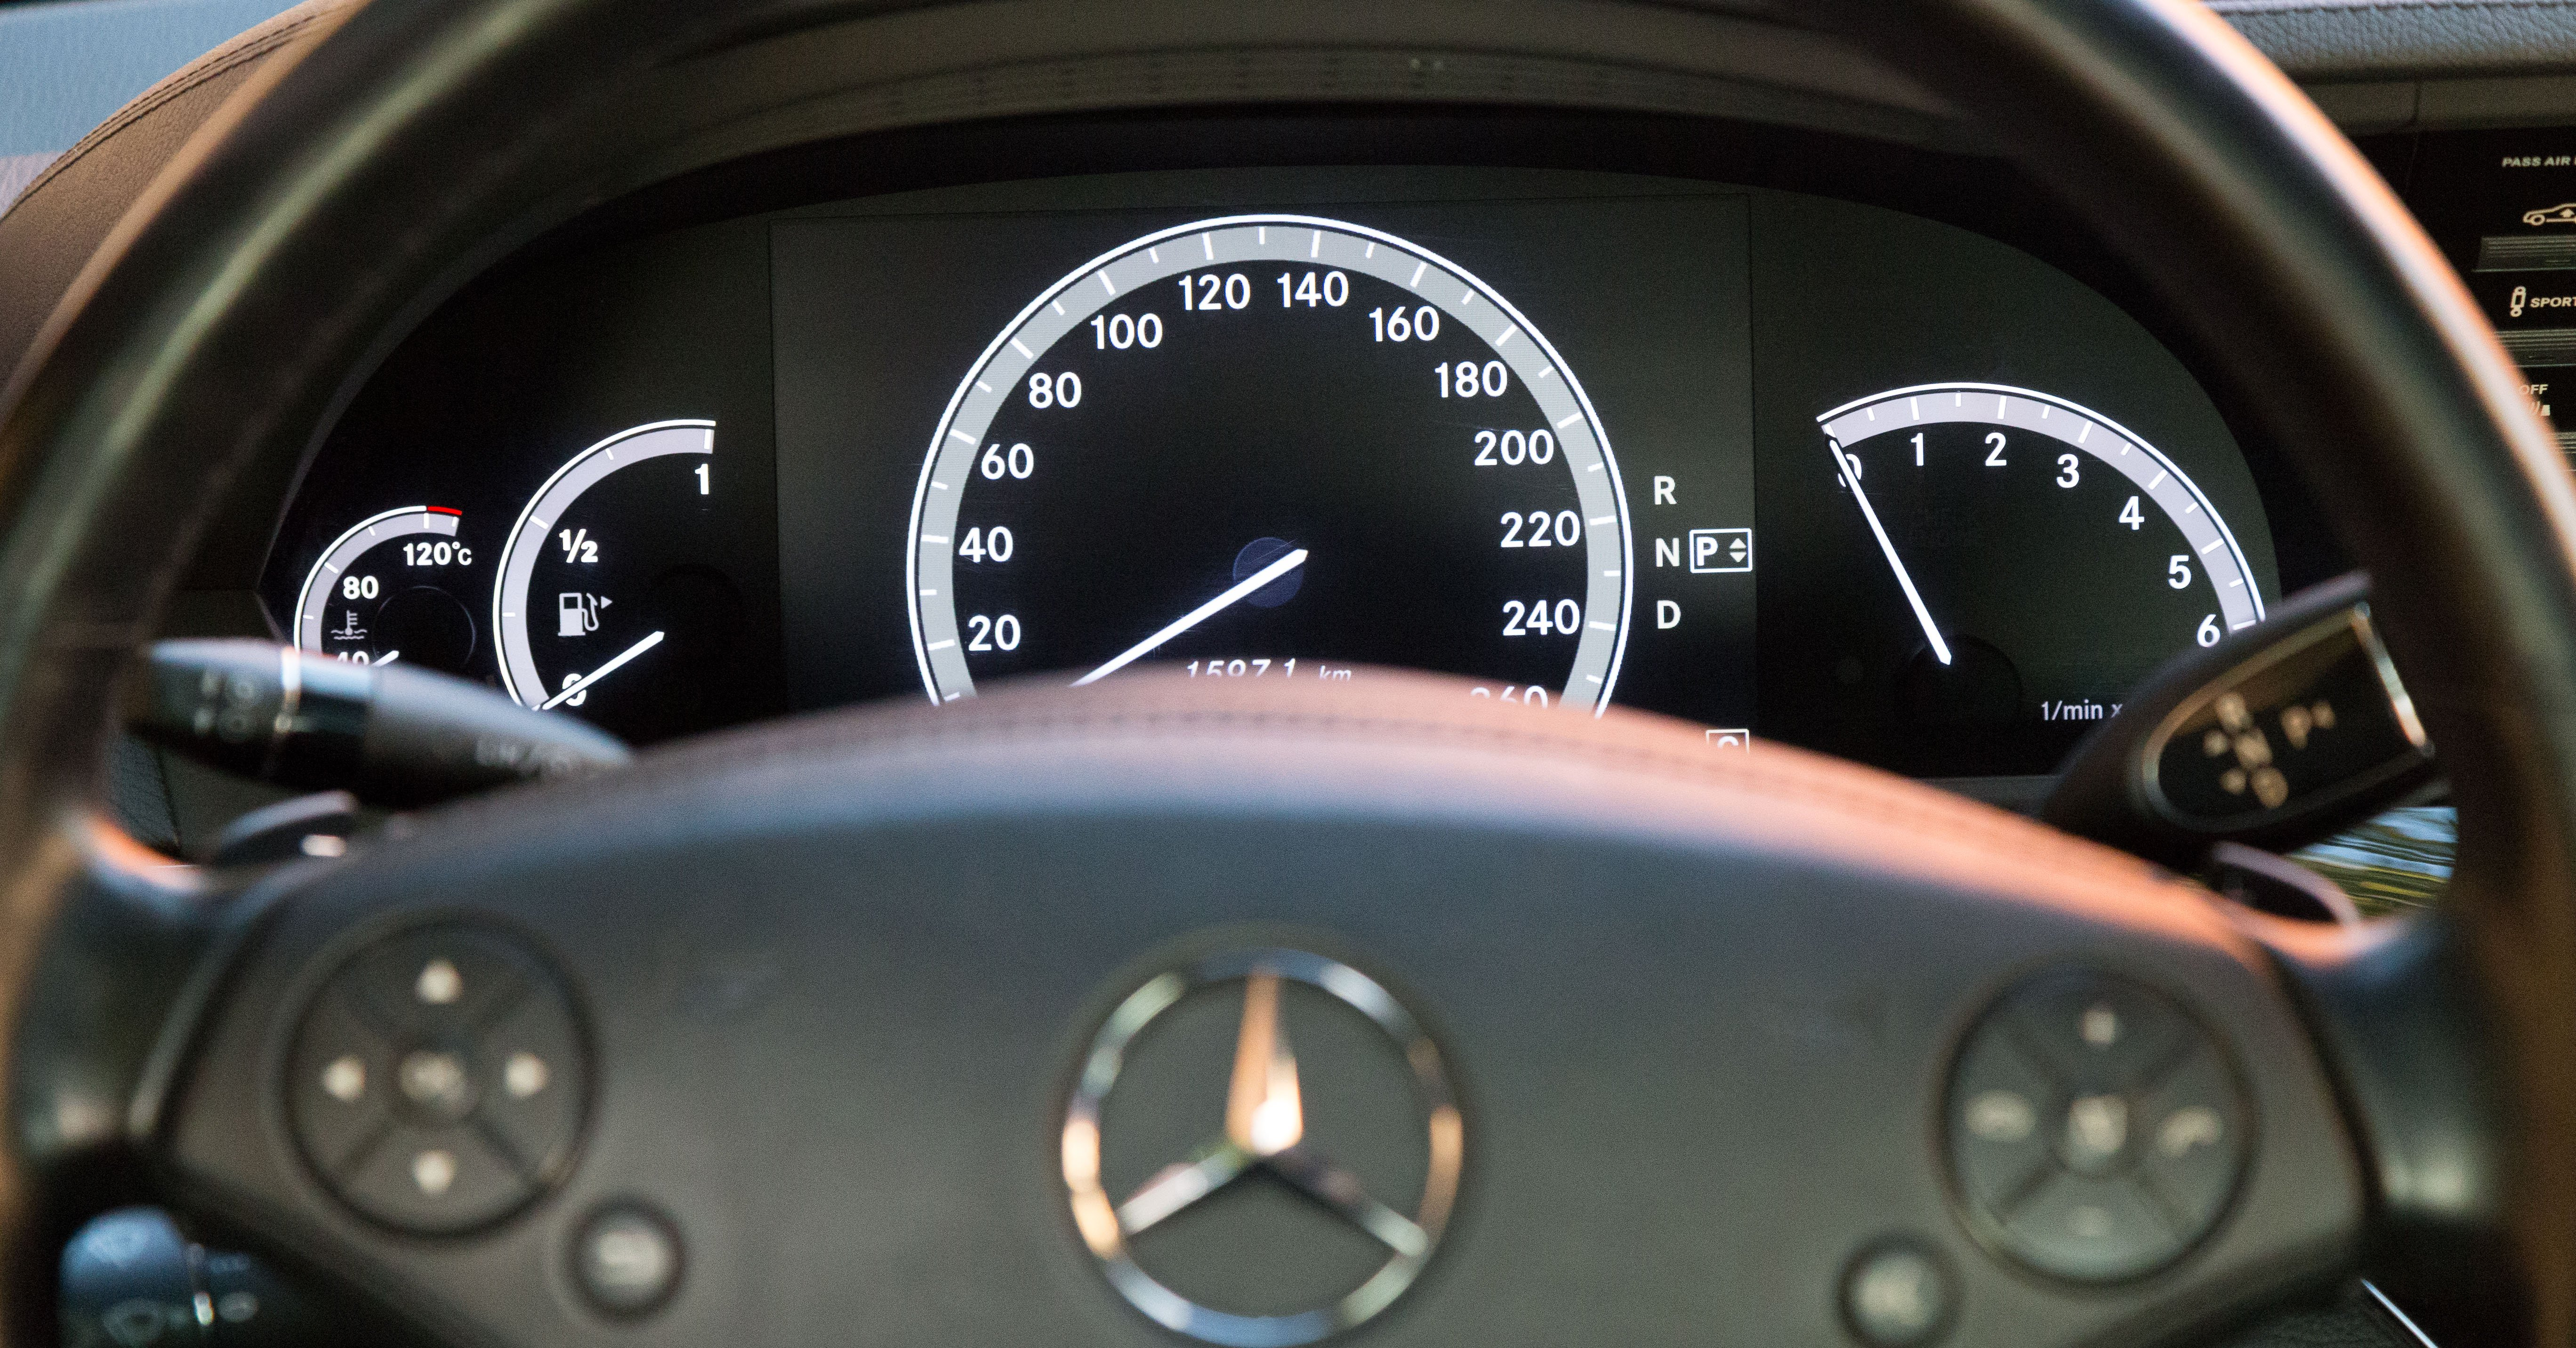 Mercedes Used Cars Hanover Used Mercedes For Sale Hanover Ma